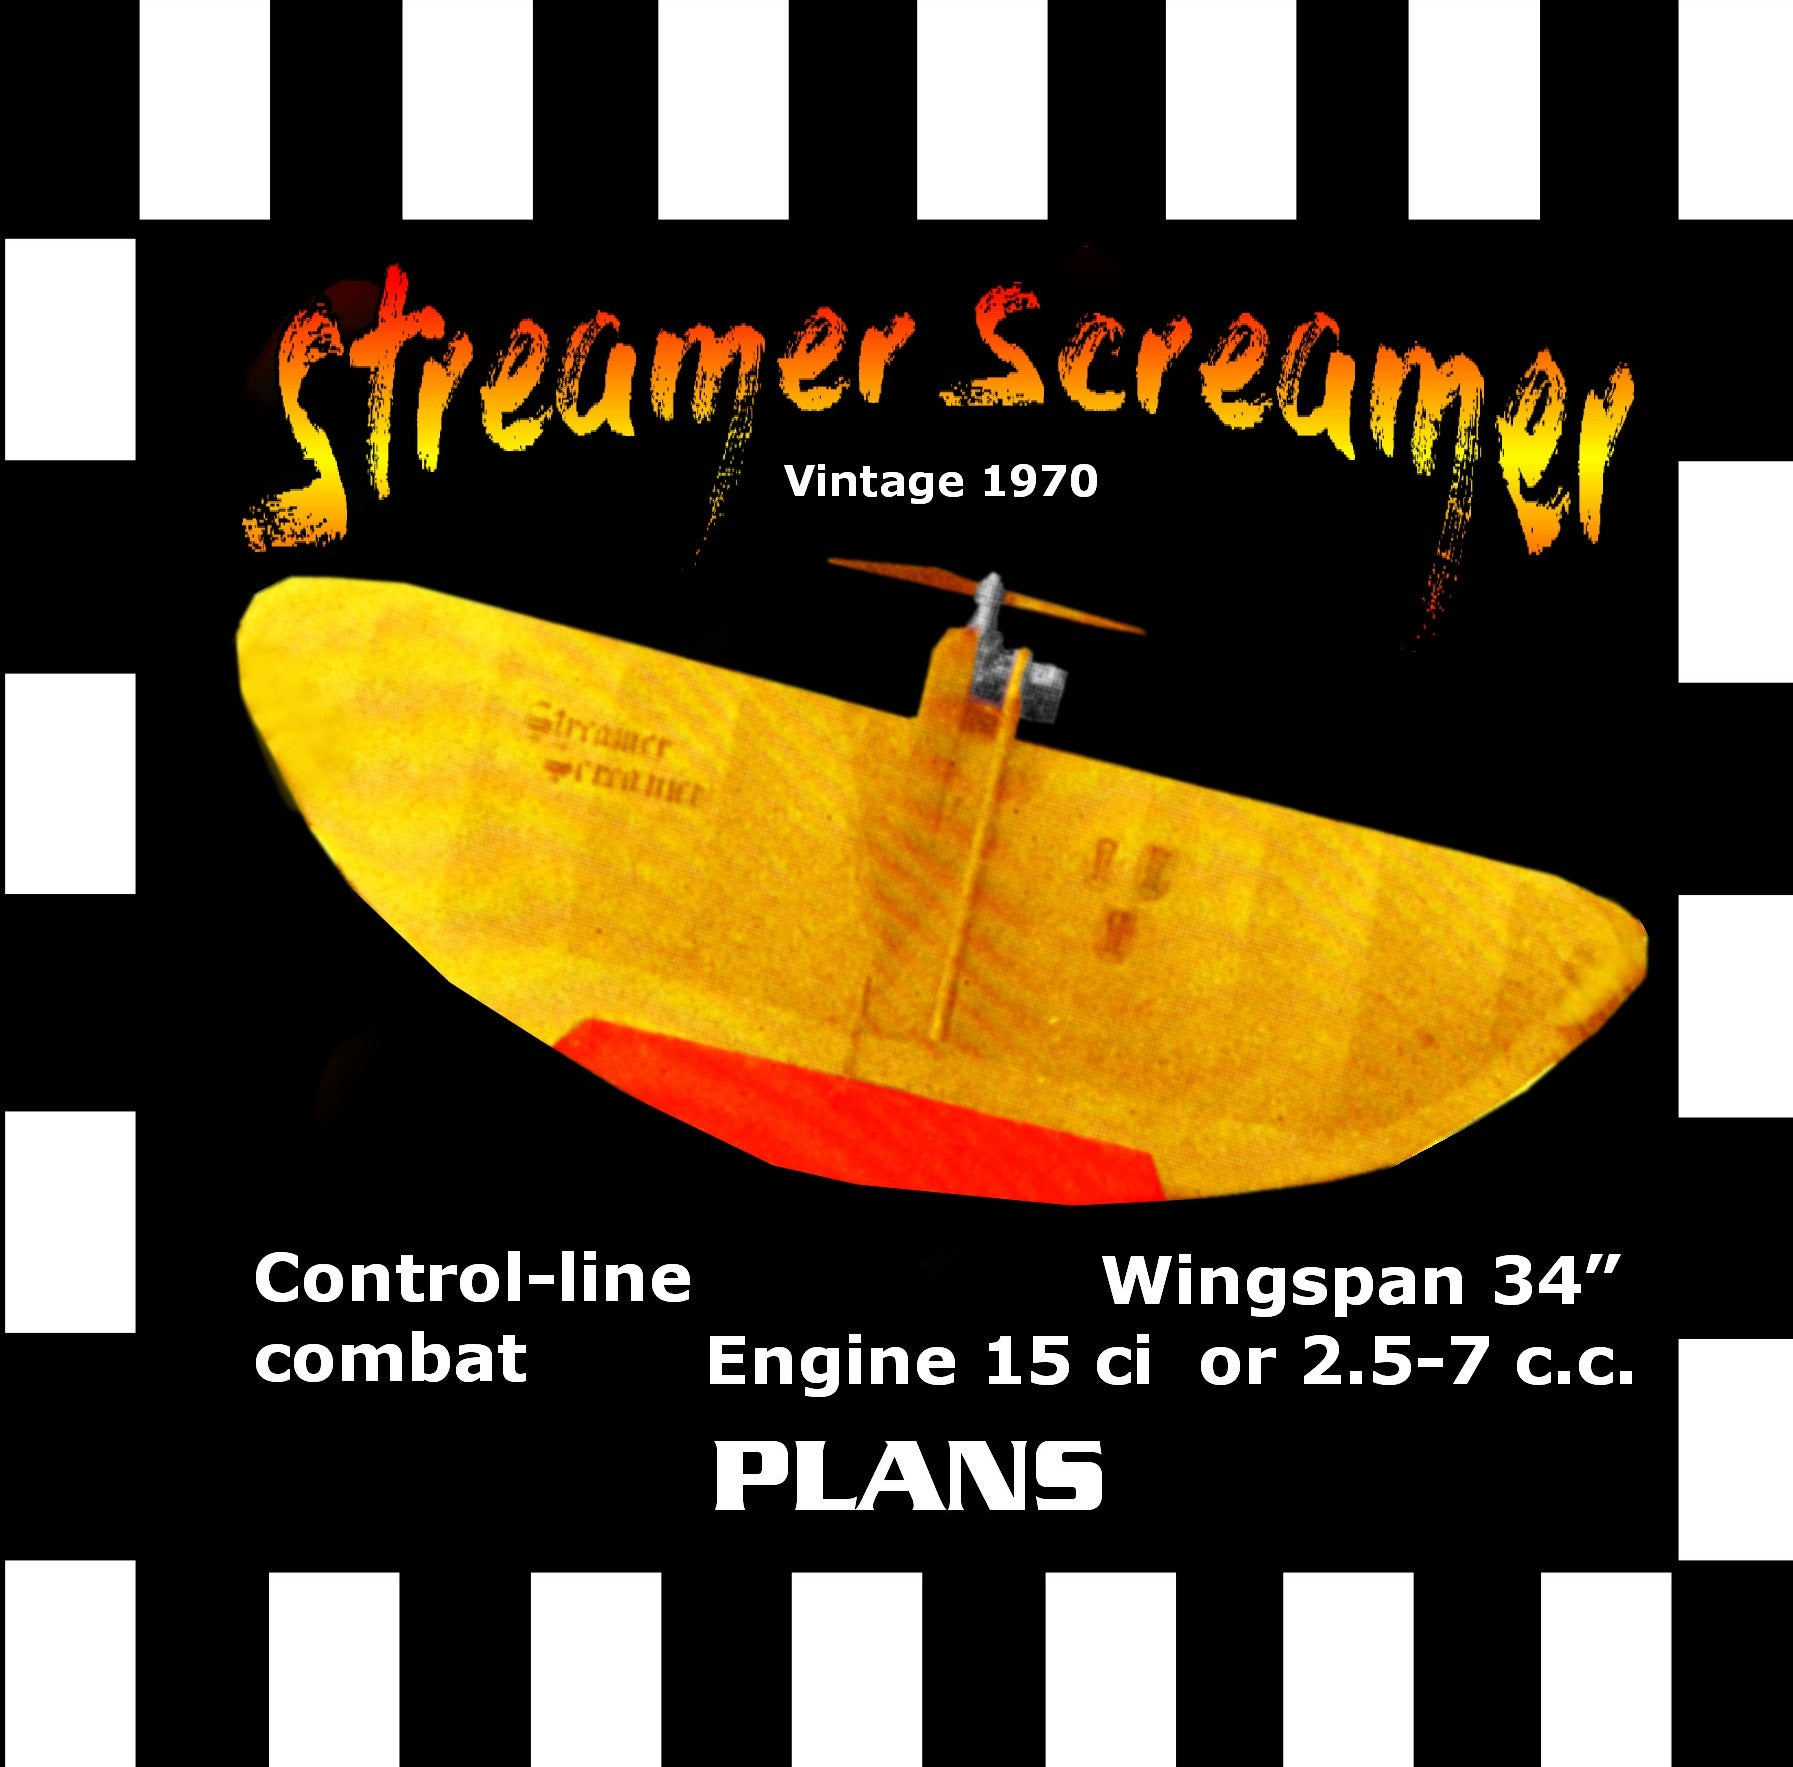 "Full Size Printed Plans Vintage 1970 Control-line combat or sports flying ""Streamer Screamer"" Great Trainer"